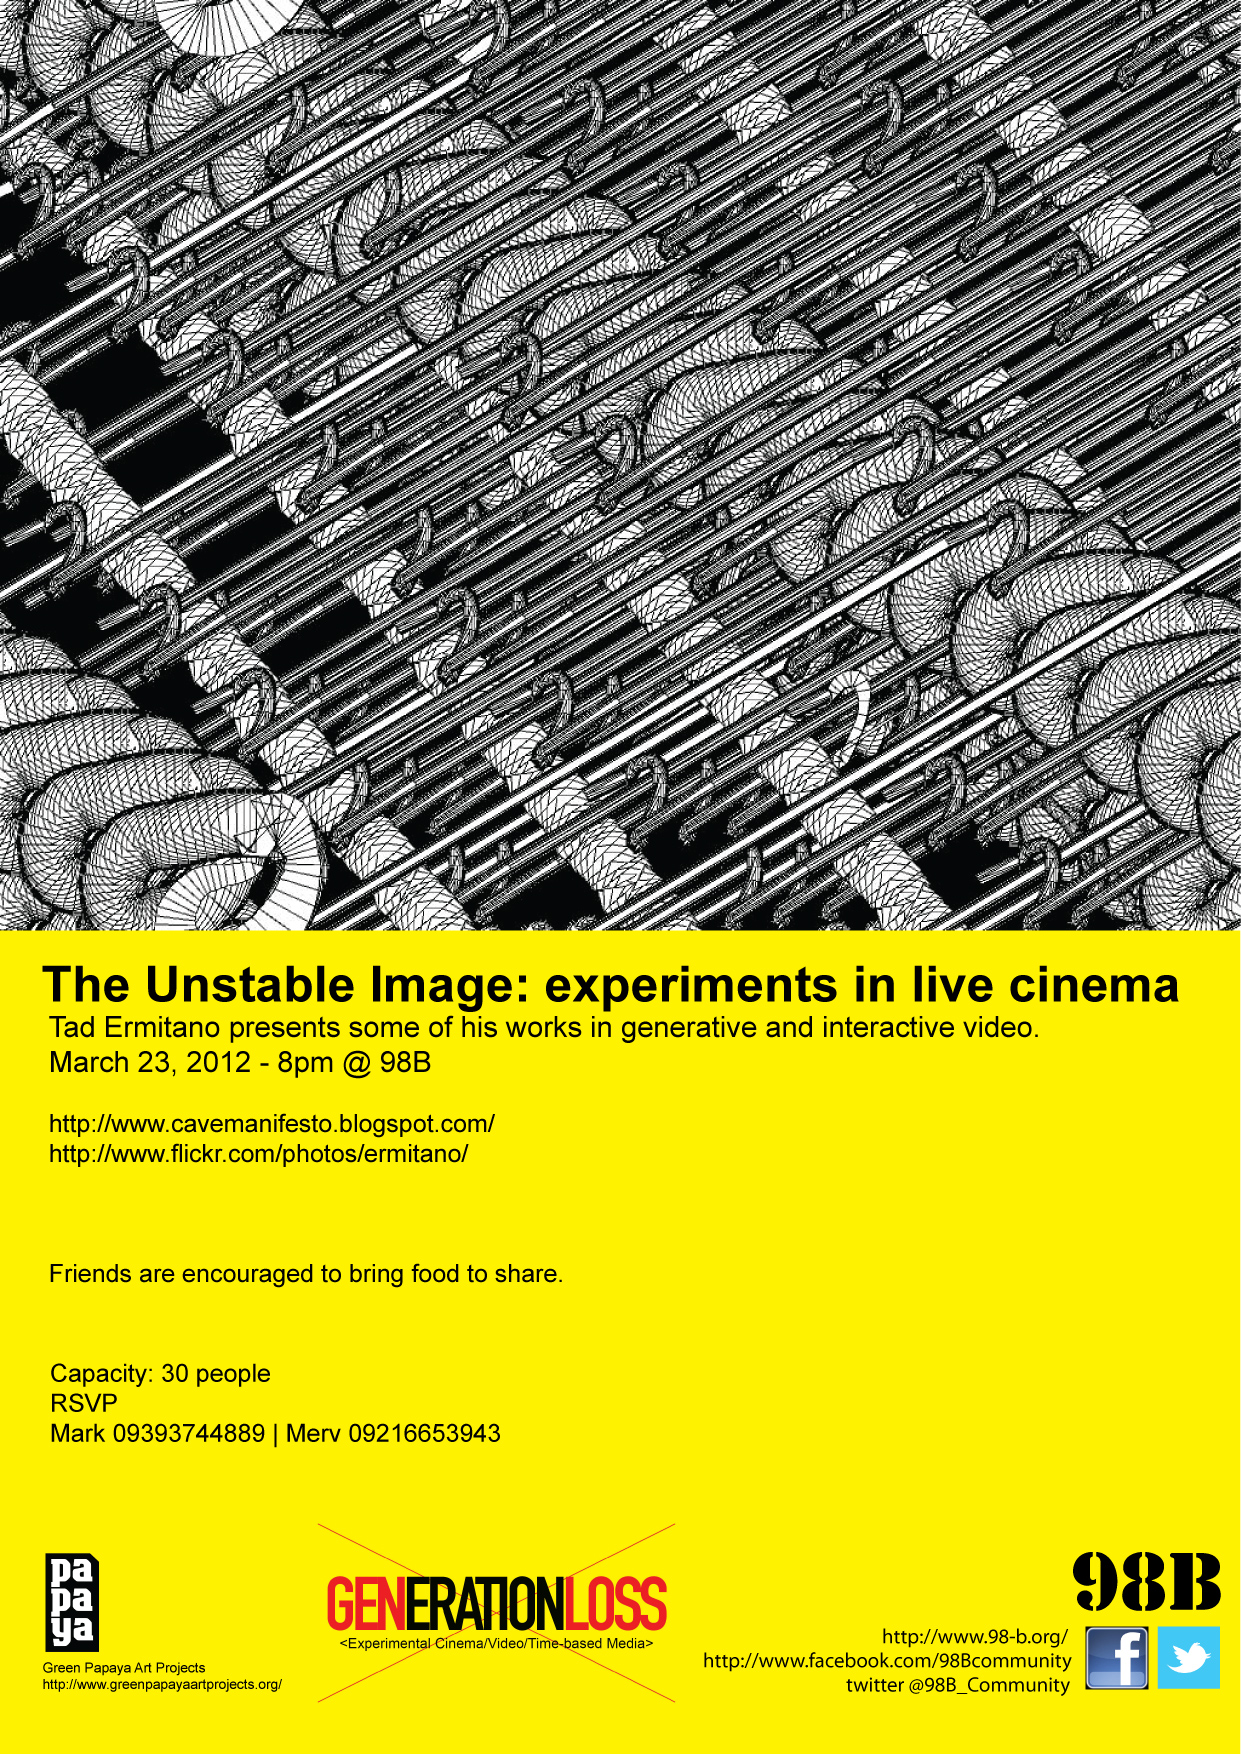 March 23, 2012 - 8pm @ 98B   The Unstable Image: experiments in live cinema    Tad Ermitano presents some of his works in generative and interactive video.     http://    www.cavemanifesto.blogspot .  com/    http://www.flickr.com/   photos/ermitano/  GENERATIONLOSS   Tad Ermitaño graduated from the Philippine Science High School in 1981, studied Zoology in the University of Hiroshima, and graduated with a degree in Philosophy from the University of the Philippines. He was also trained in film and video at the Mowelfund Film Institute. He was a founding member of the seminal sound art band The Children of Cathode Ray and is a leading media artist who uses sound, video, programming and electronics in the creation of his films and installations, which have been exhibited in numerous local and international festivals and galleries.  His own unaccompanied single-channel videos are distinguished by an aural and visual sensuousness underpinned by a sequential logic that reflects his training in philosophy and the sciences. His facility with a broad range of technologies has led to his exploration of computers, programming, and electronics to manipulate sound and video in real time. He also maintains Culture Tech, a regular column at Interaksyon.com